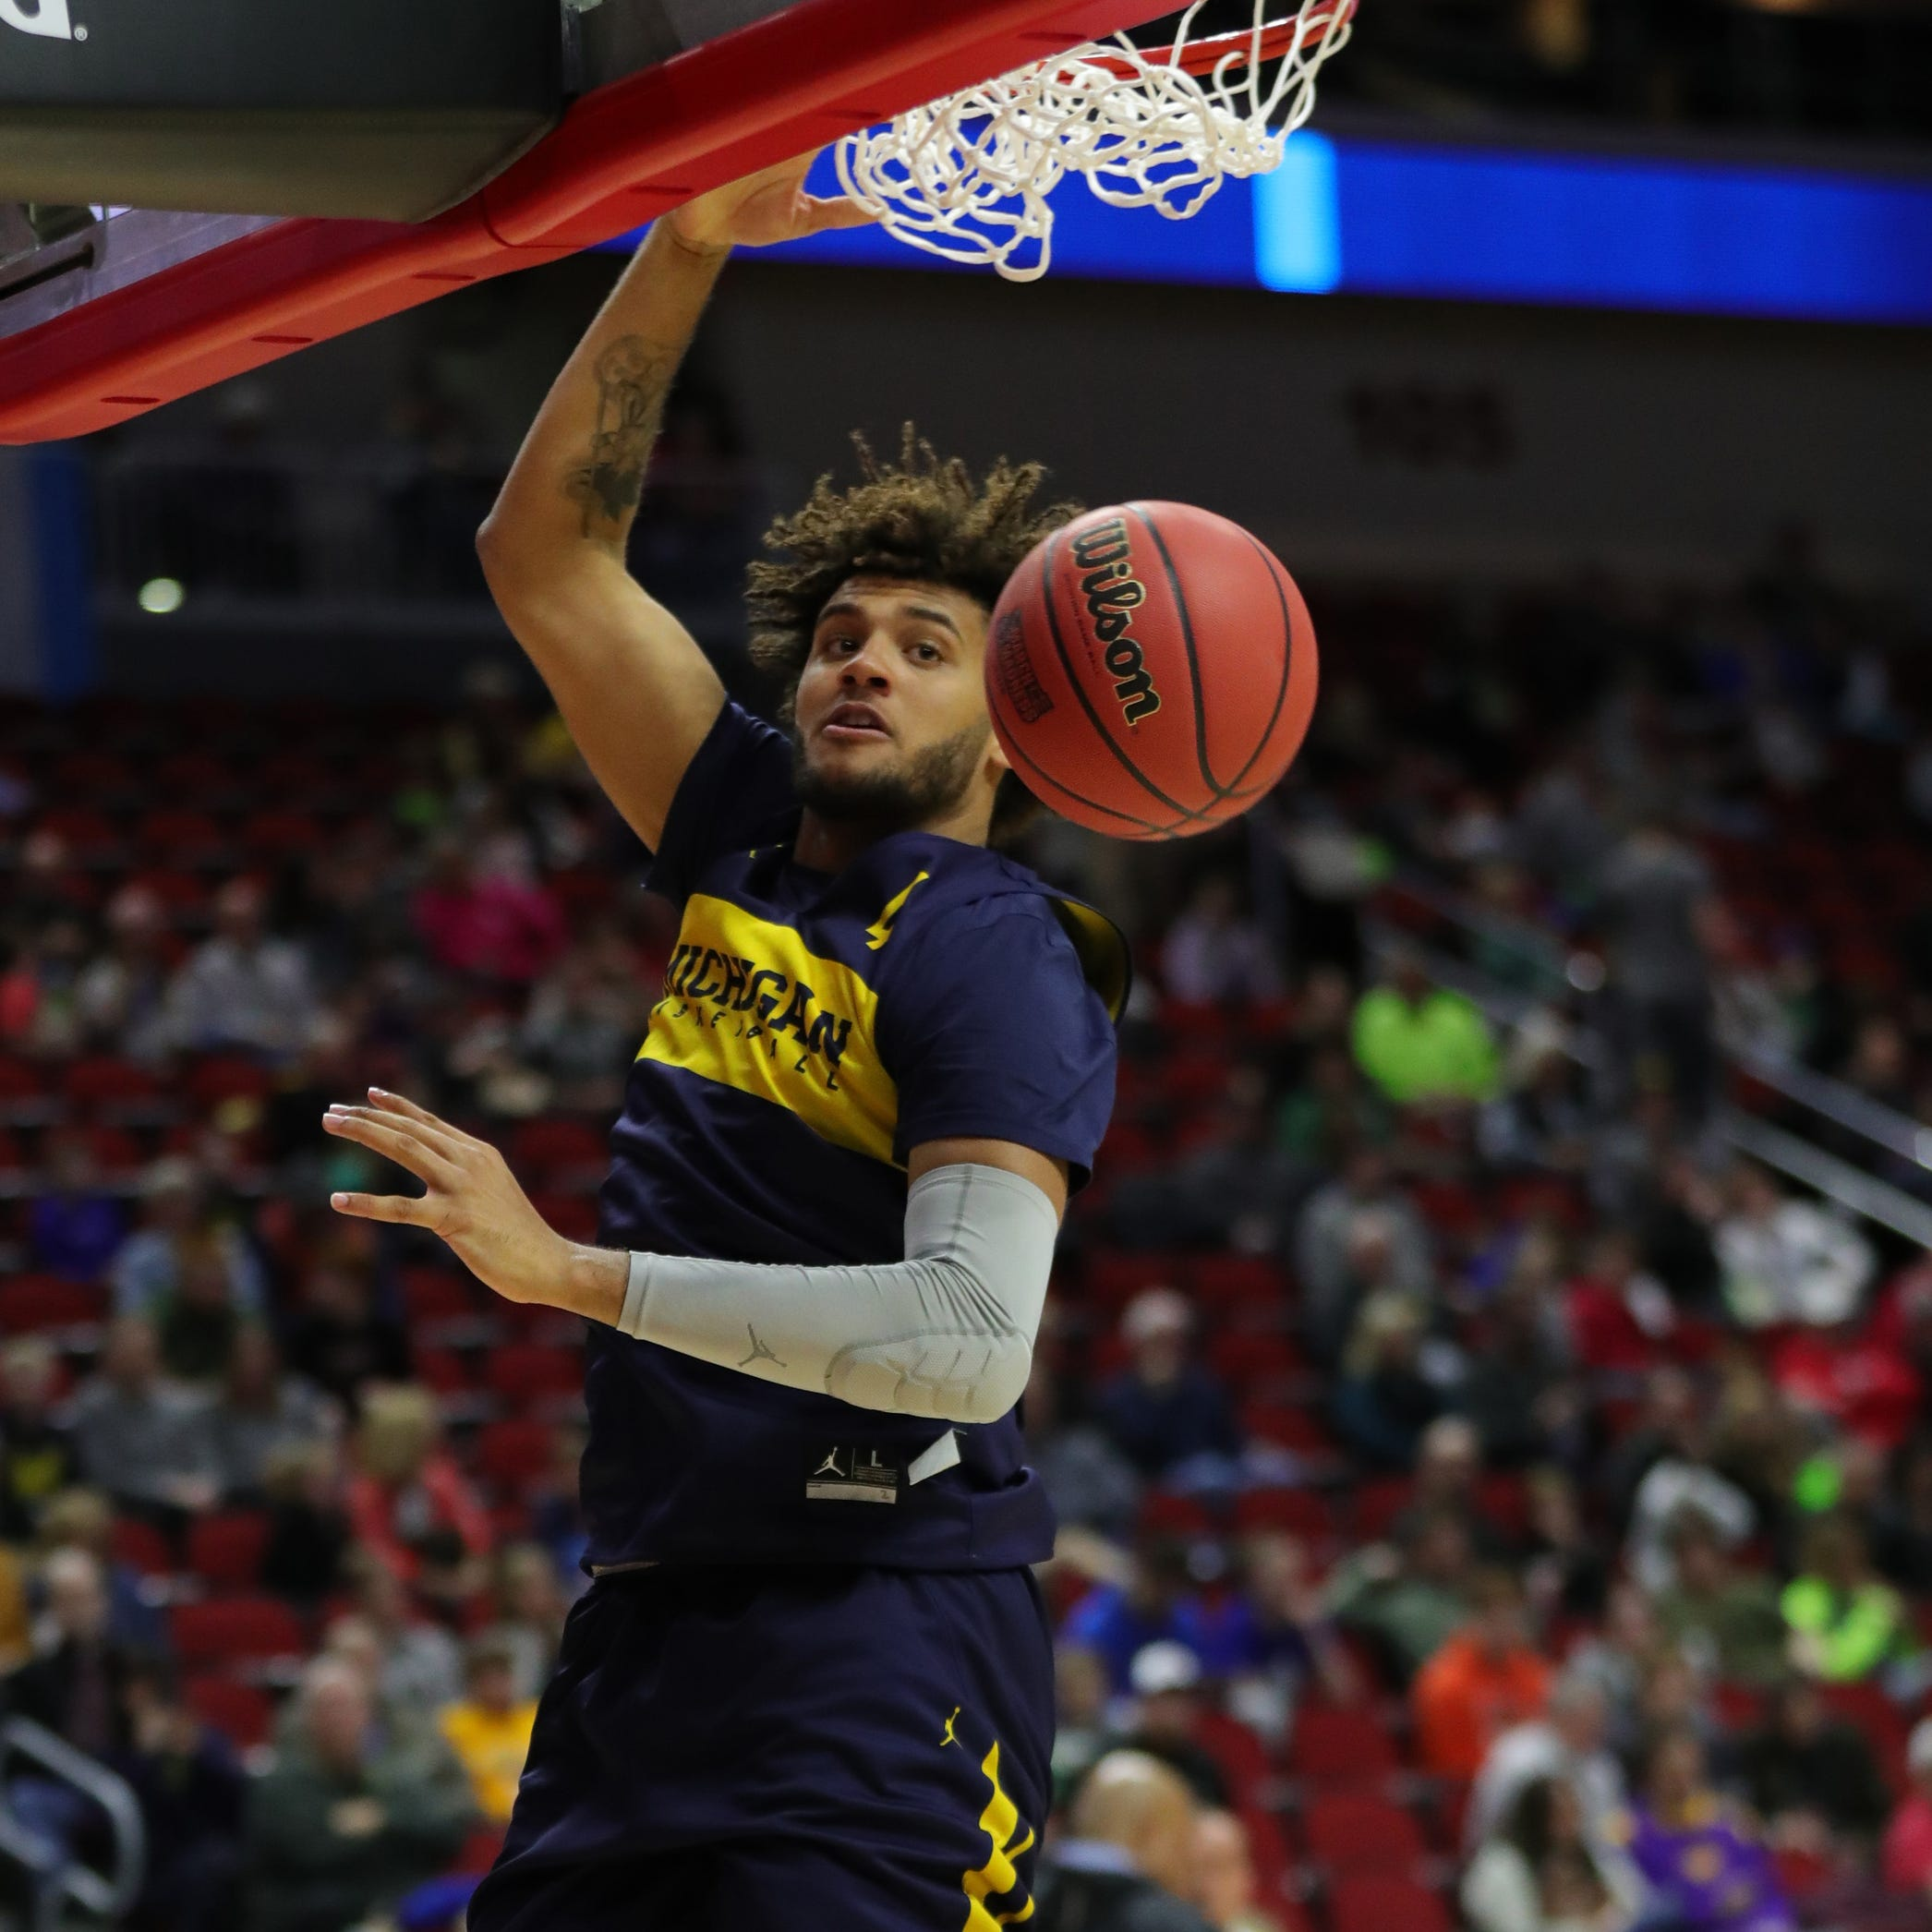 Michigan basketball vs. Montana: NCAA tournament game predictions